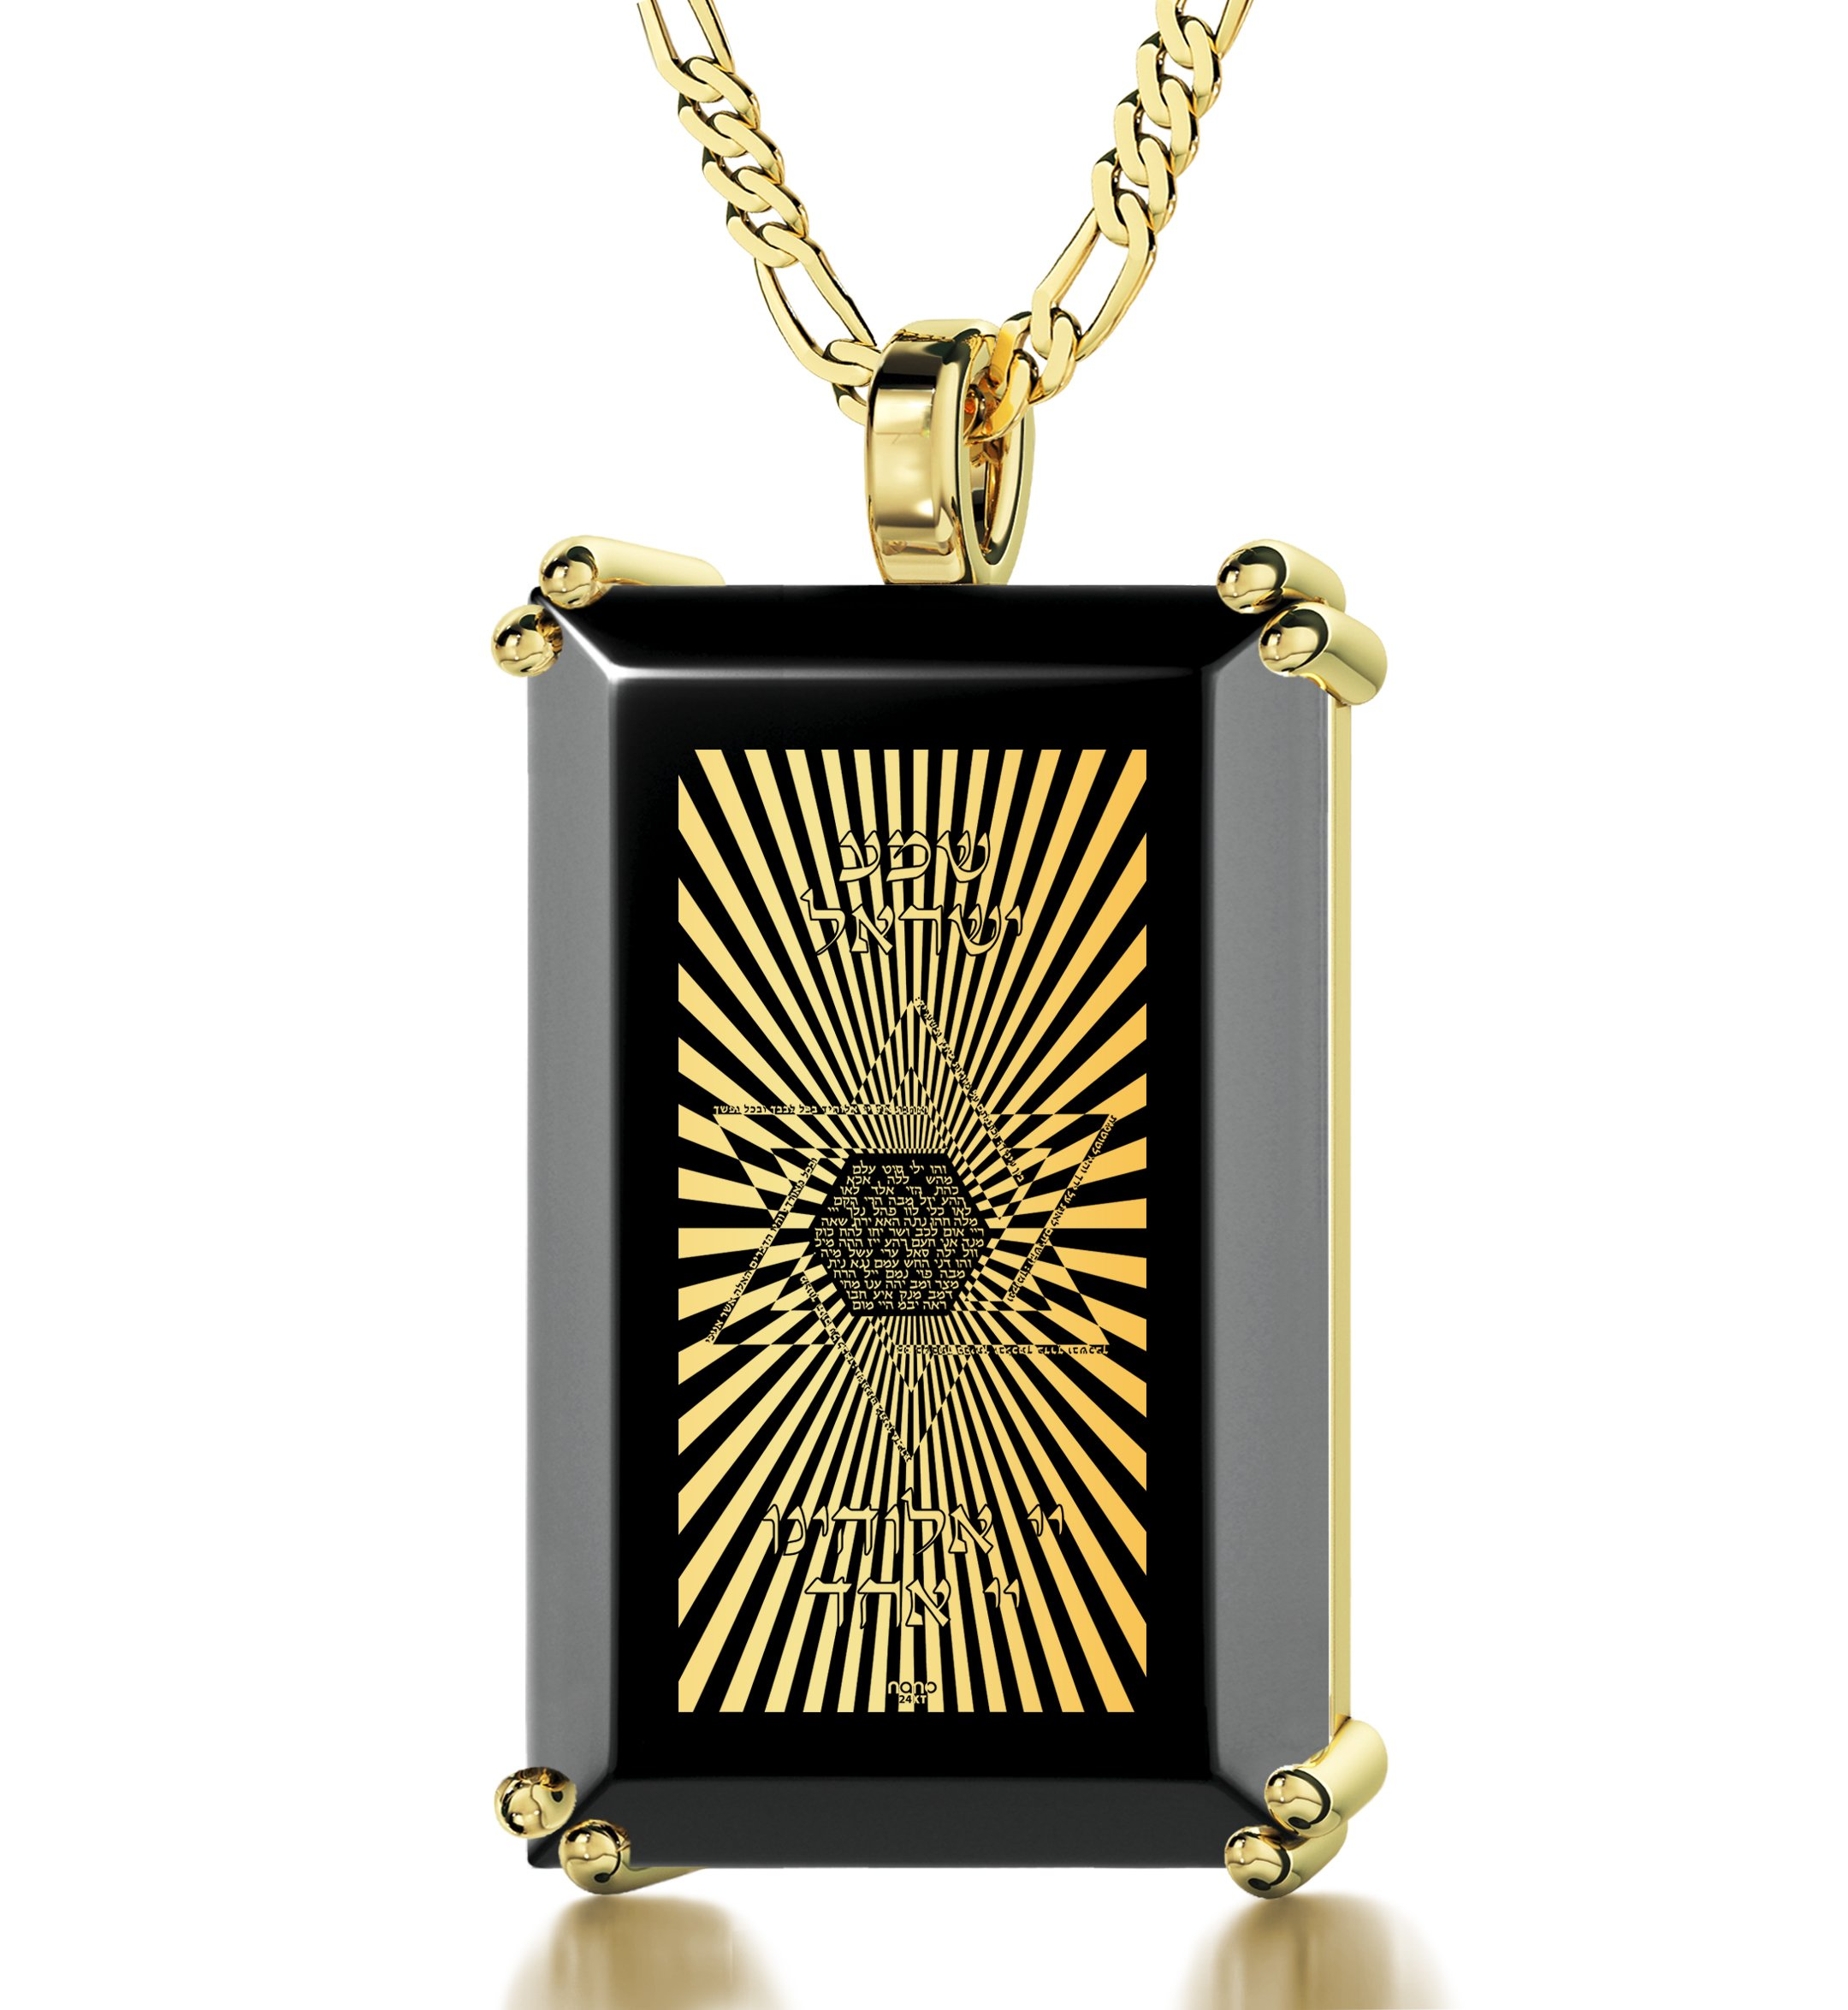 Men's Gold Plated Star of David Kabbalah Necklace with Hebrew Shema Yisrael Inscribed in 24k Gold on Onyx Stone Pendant, 20'' by Nano Jewelry